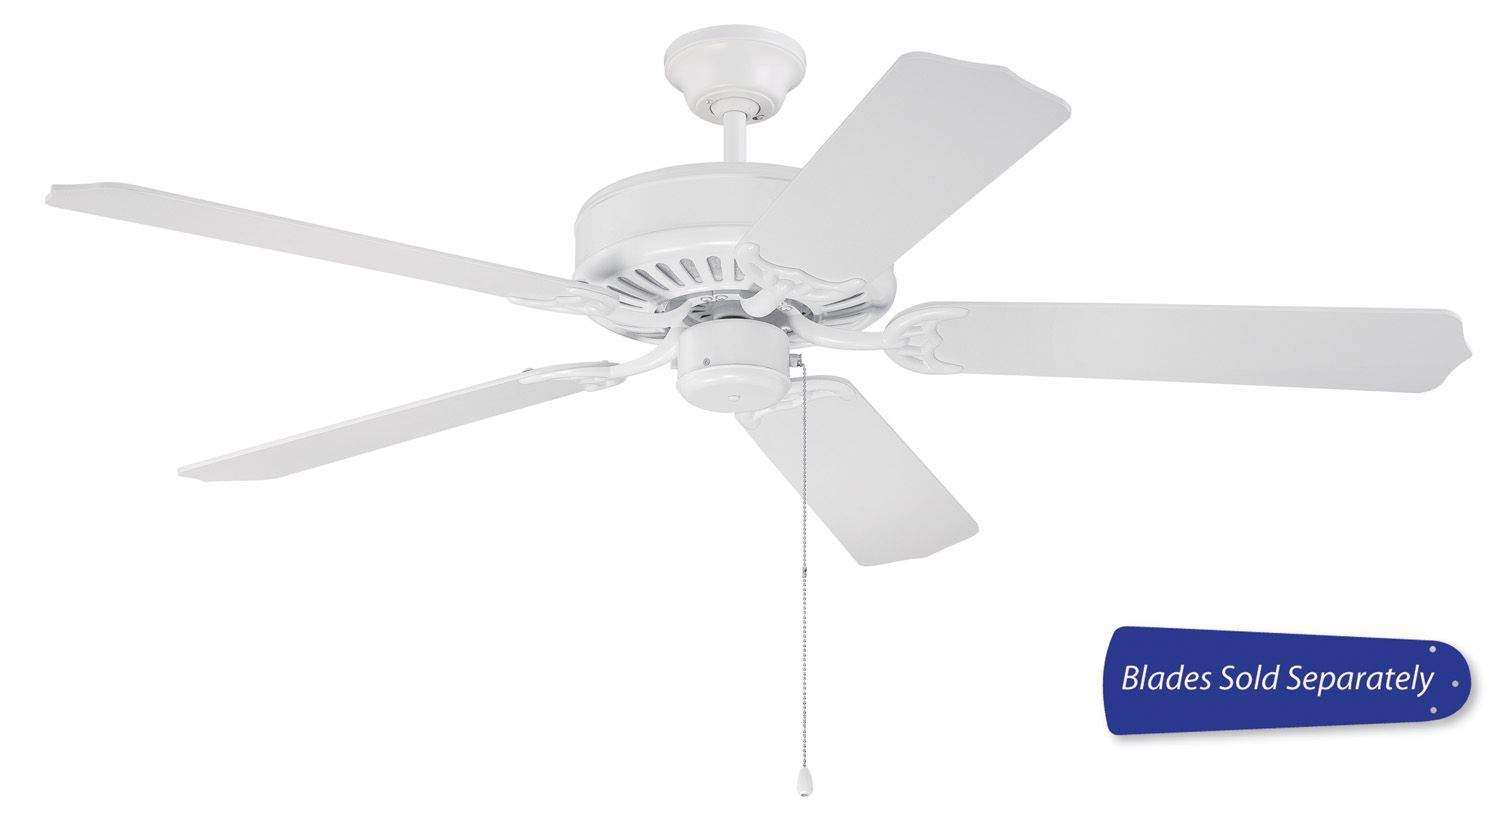 Craftmade Pro Builder Ceiling Fan Model C52W in Gloss White